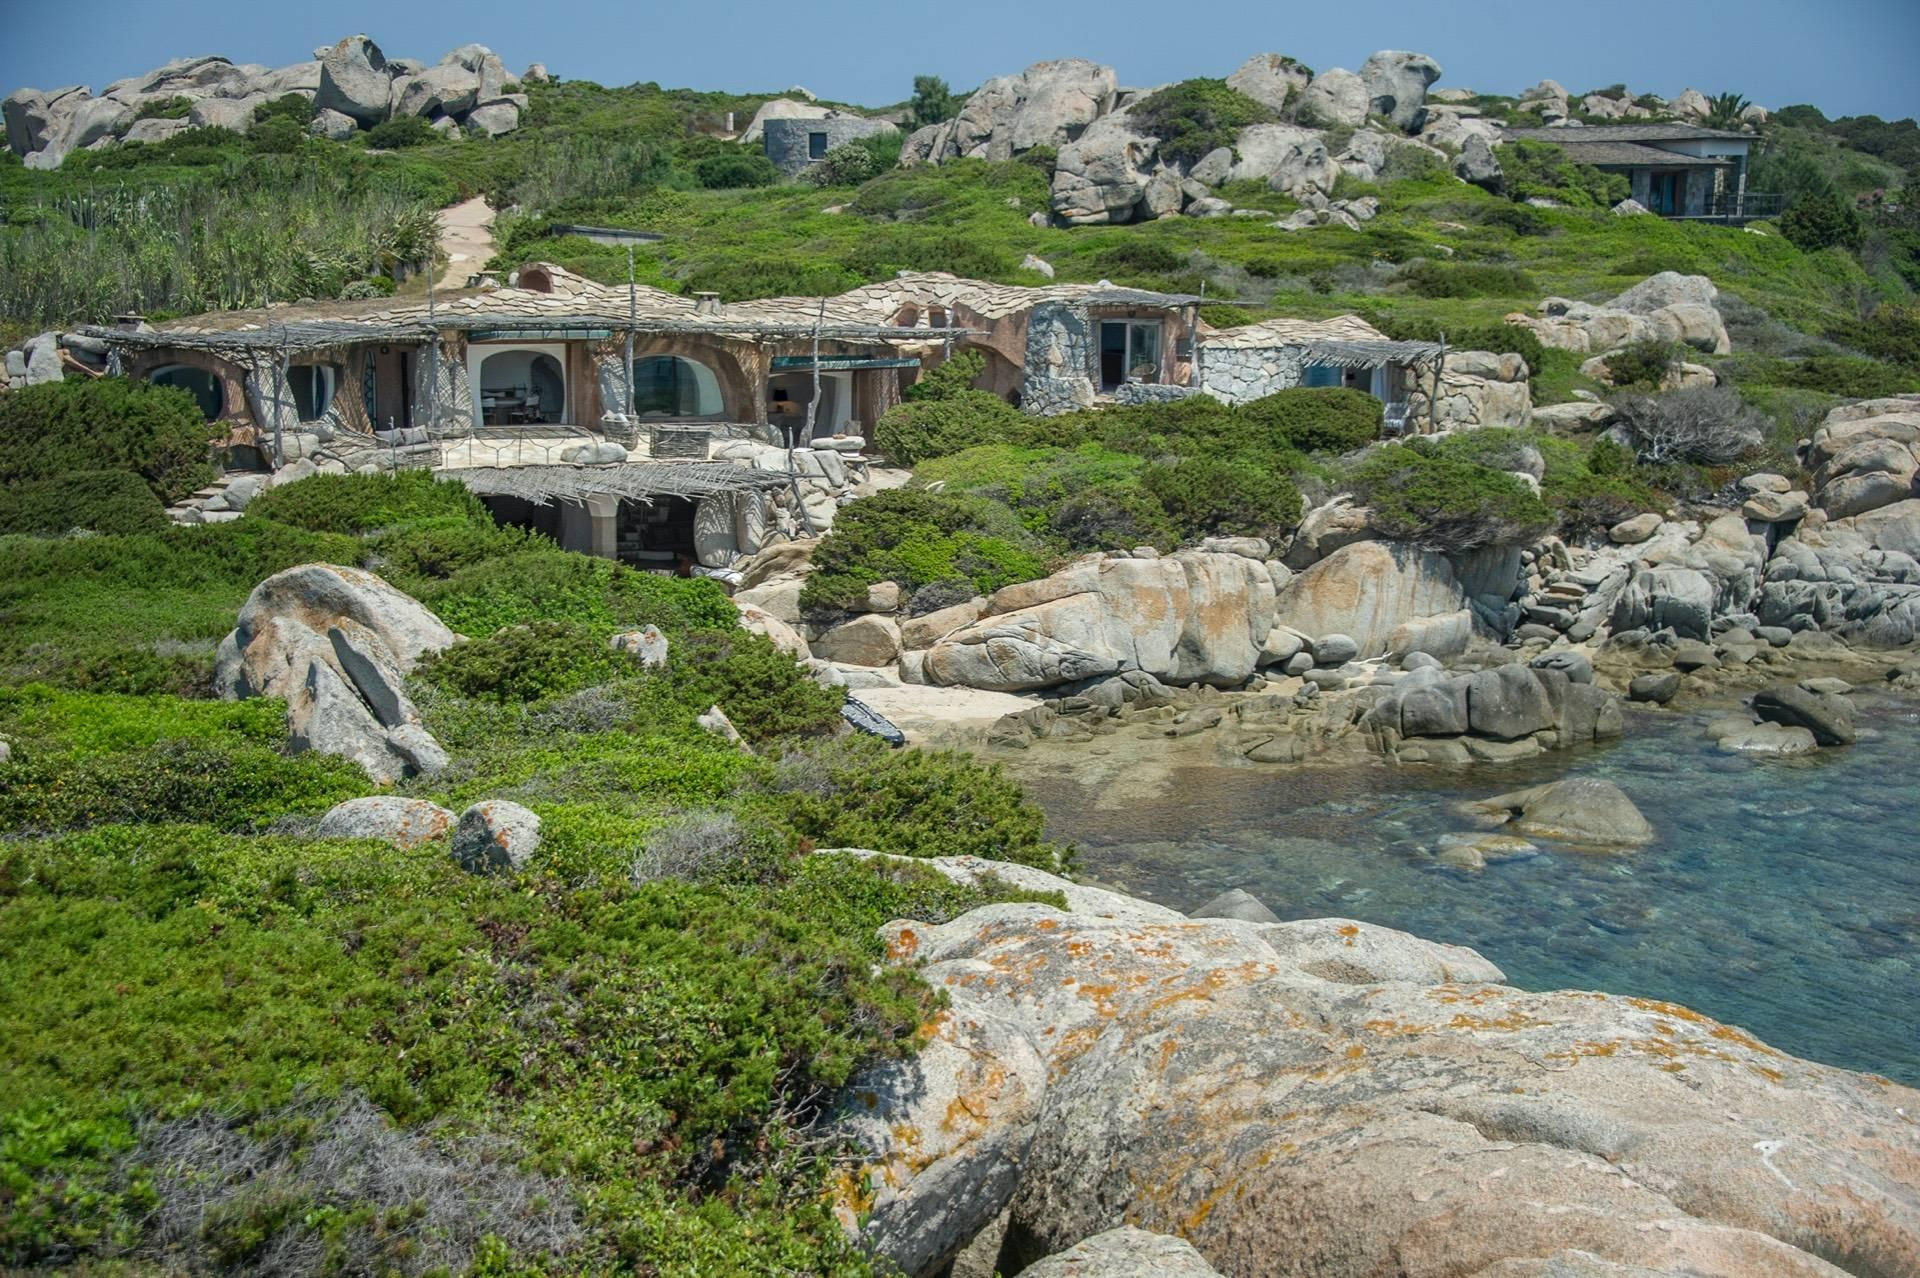 Cavallo Island, Corsica - Pieds-dans-l'eau villa designed by the architect Savin Couelle - 18